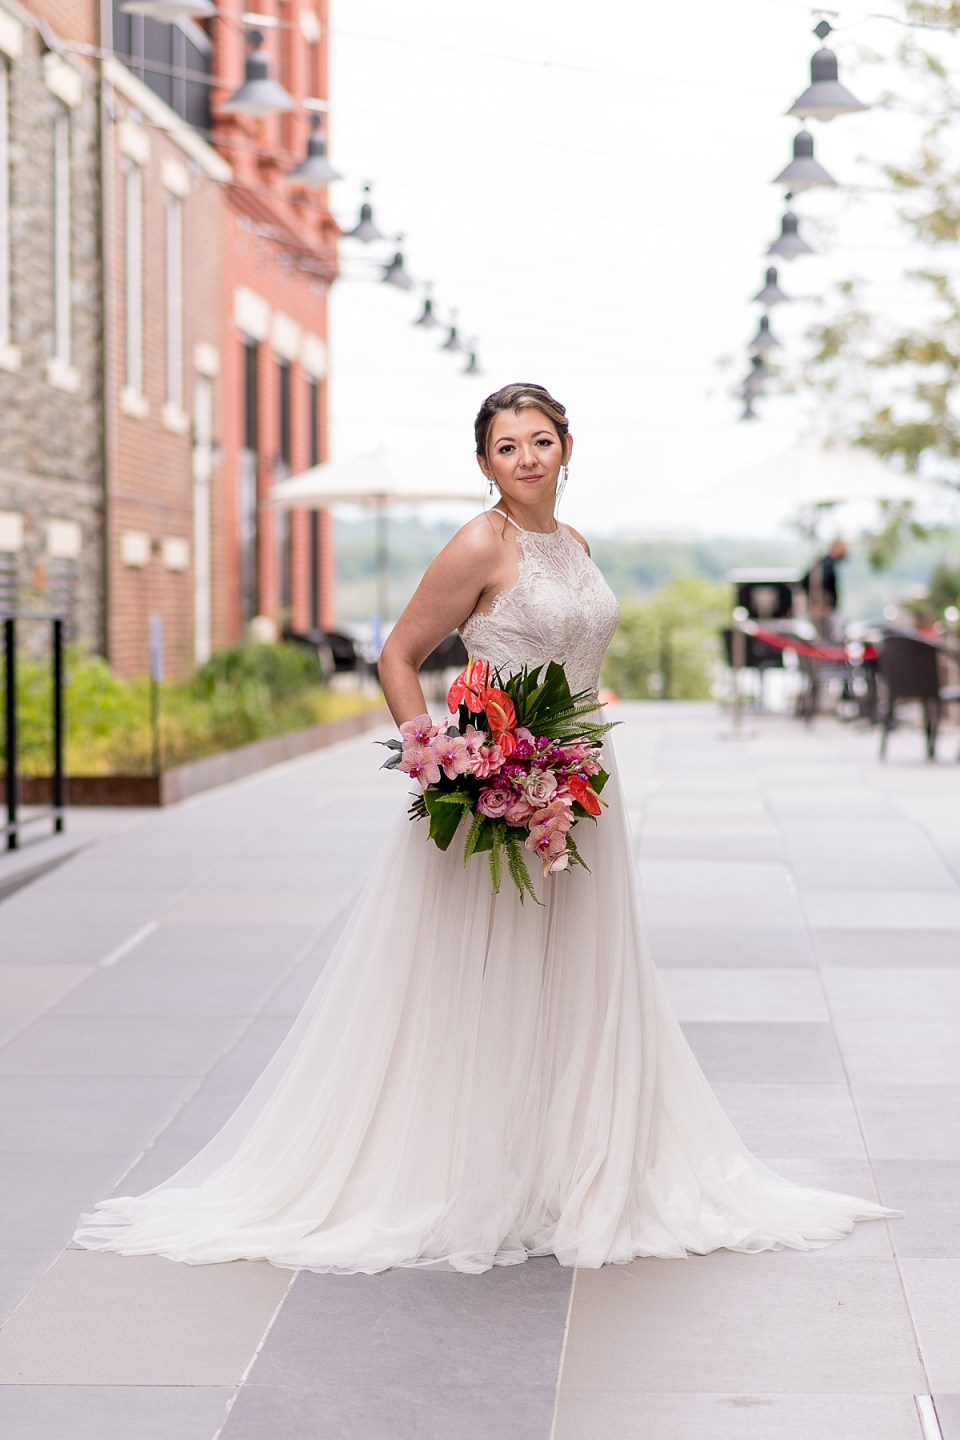 Bride with Tropical Bouquet at Old Town Alexandria Wedding